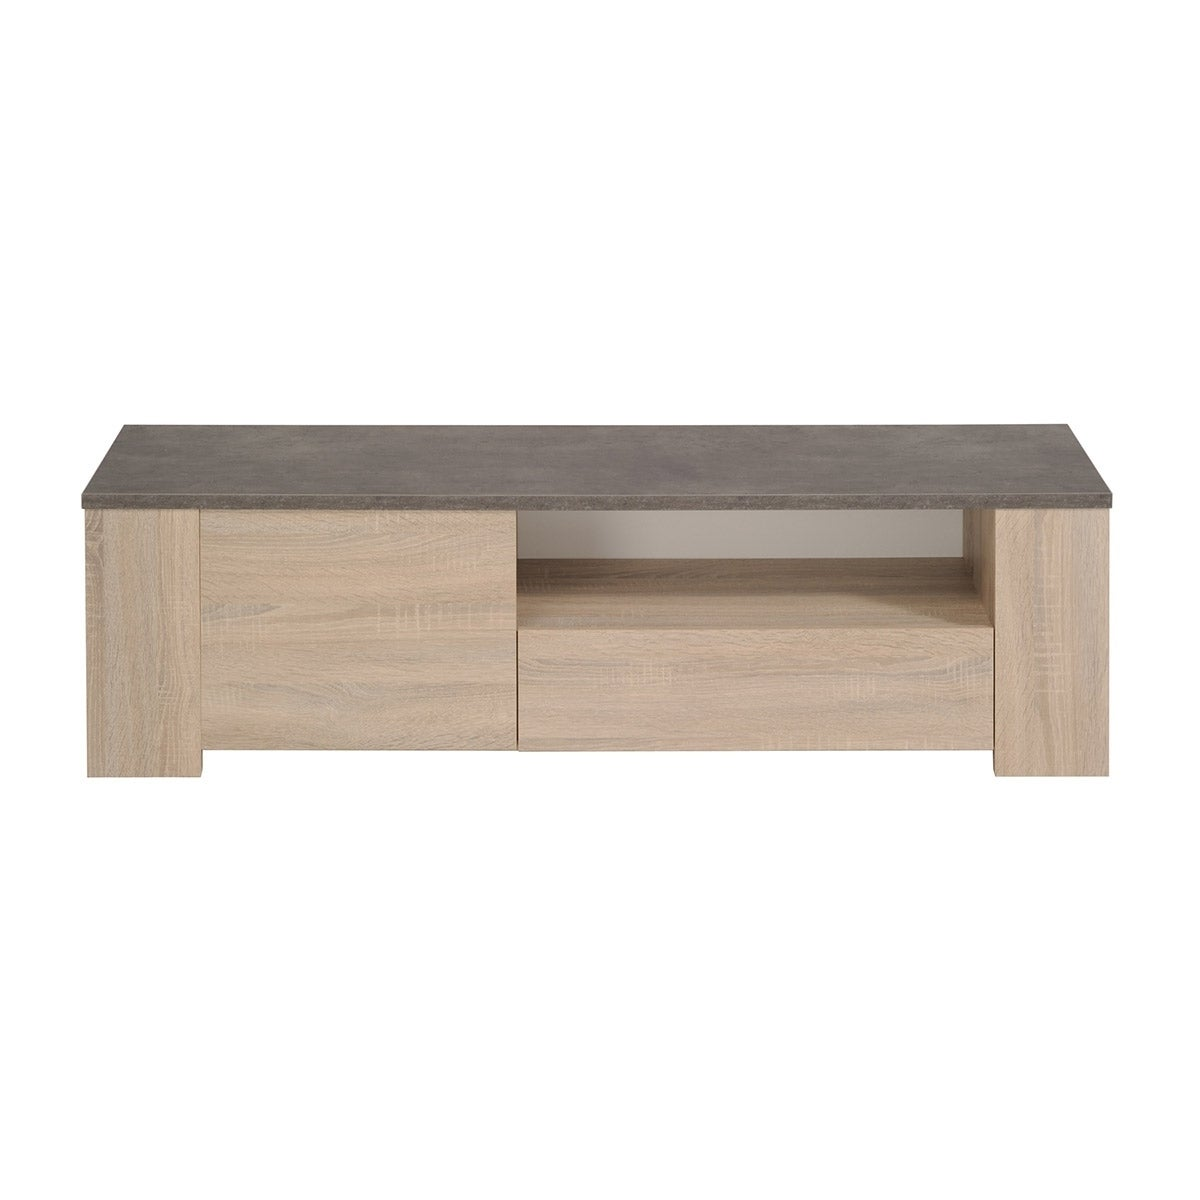 Shop Fumay Tv Unit Free Shipping Today Overstock 23504112